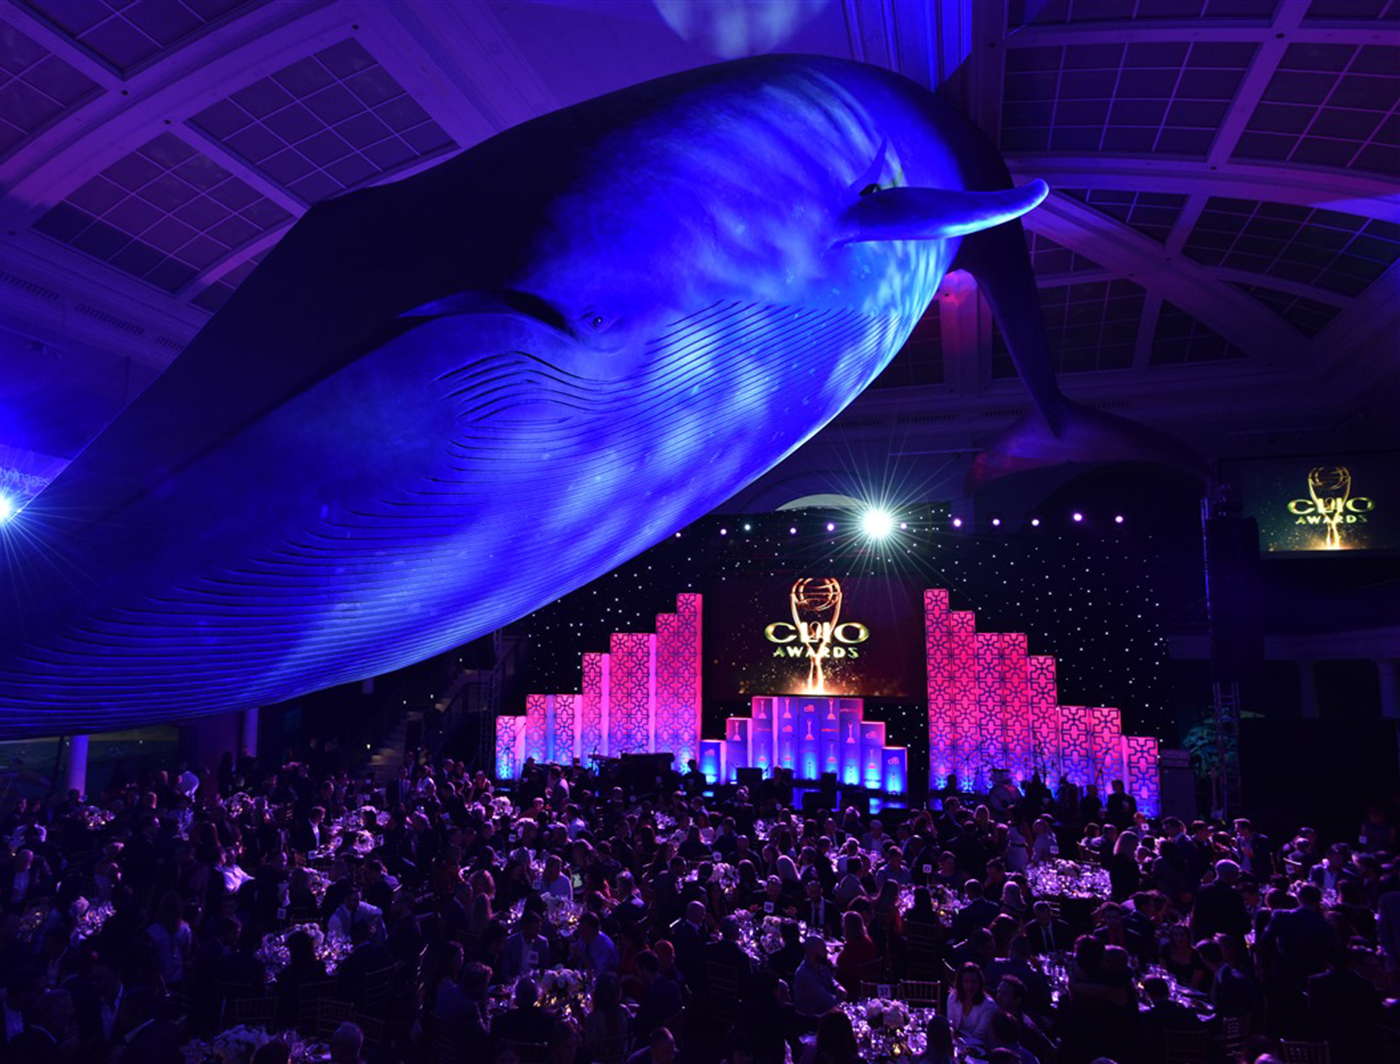 Clover on stage at the Clio Awards (Photo and Design Credit to Matthew Gavin)